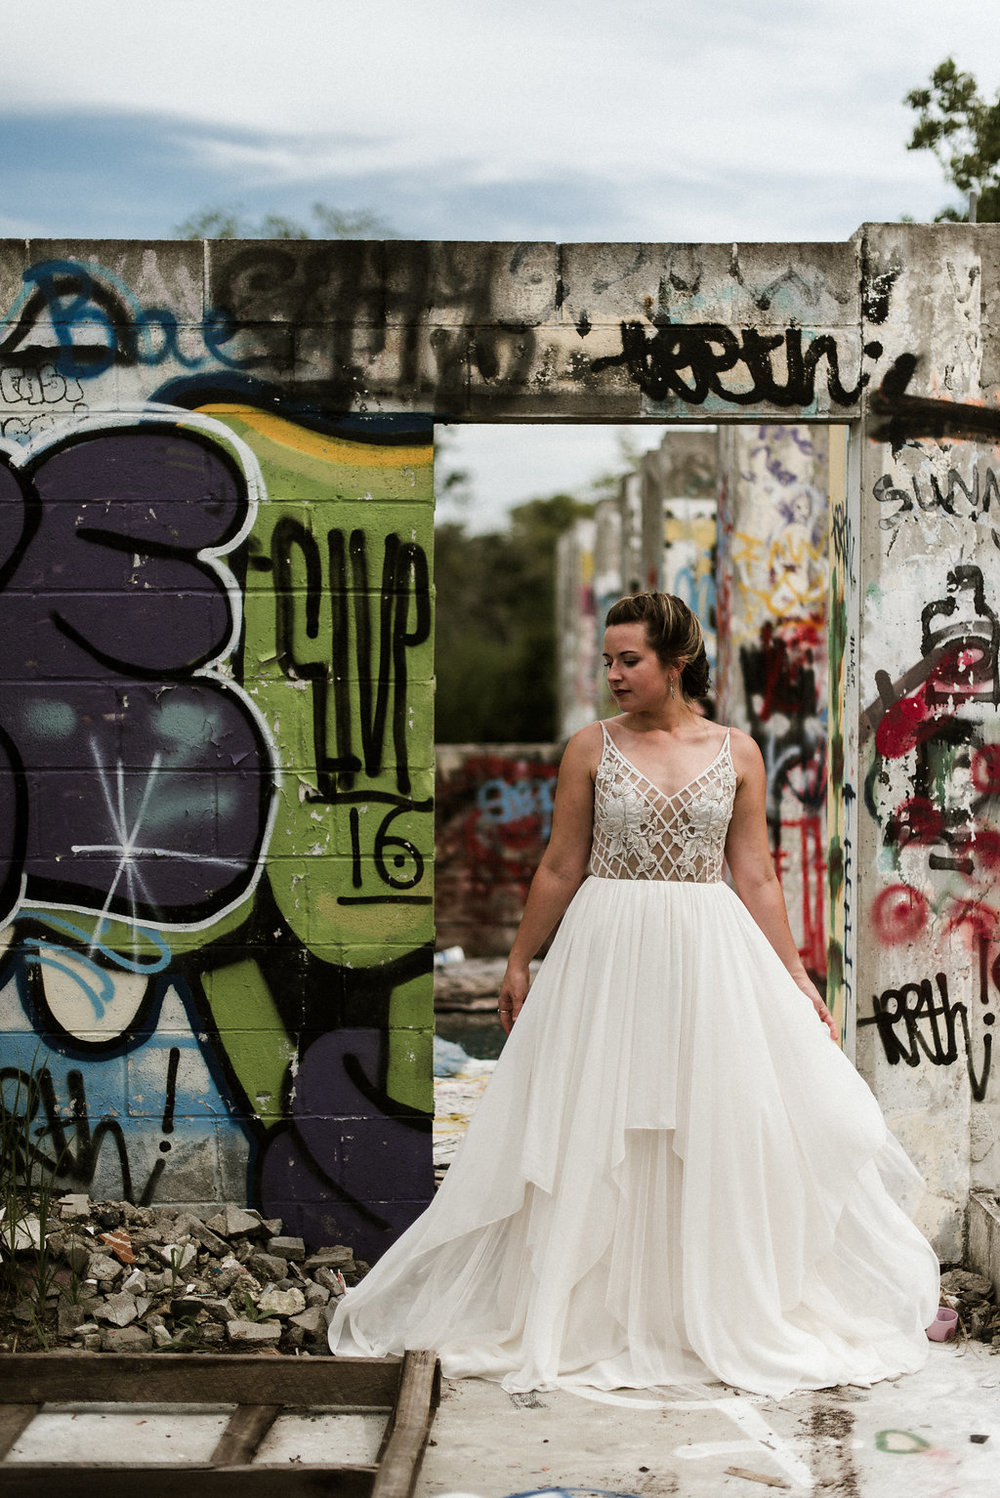 Savannah-Stonehenge-lauren-imus-photography-savannah-wedding-photographer-blush-by-hayley-paige-honeycomb-ivory-and-beau-bridal-boutique-savannah-wedding-dresses-savannah-bridal-boutique-savannah-wedding-planner-savannah-florist-graffiti-wedding-1.jpg